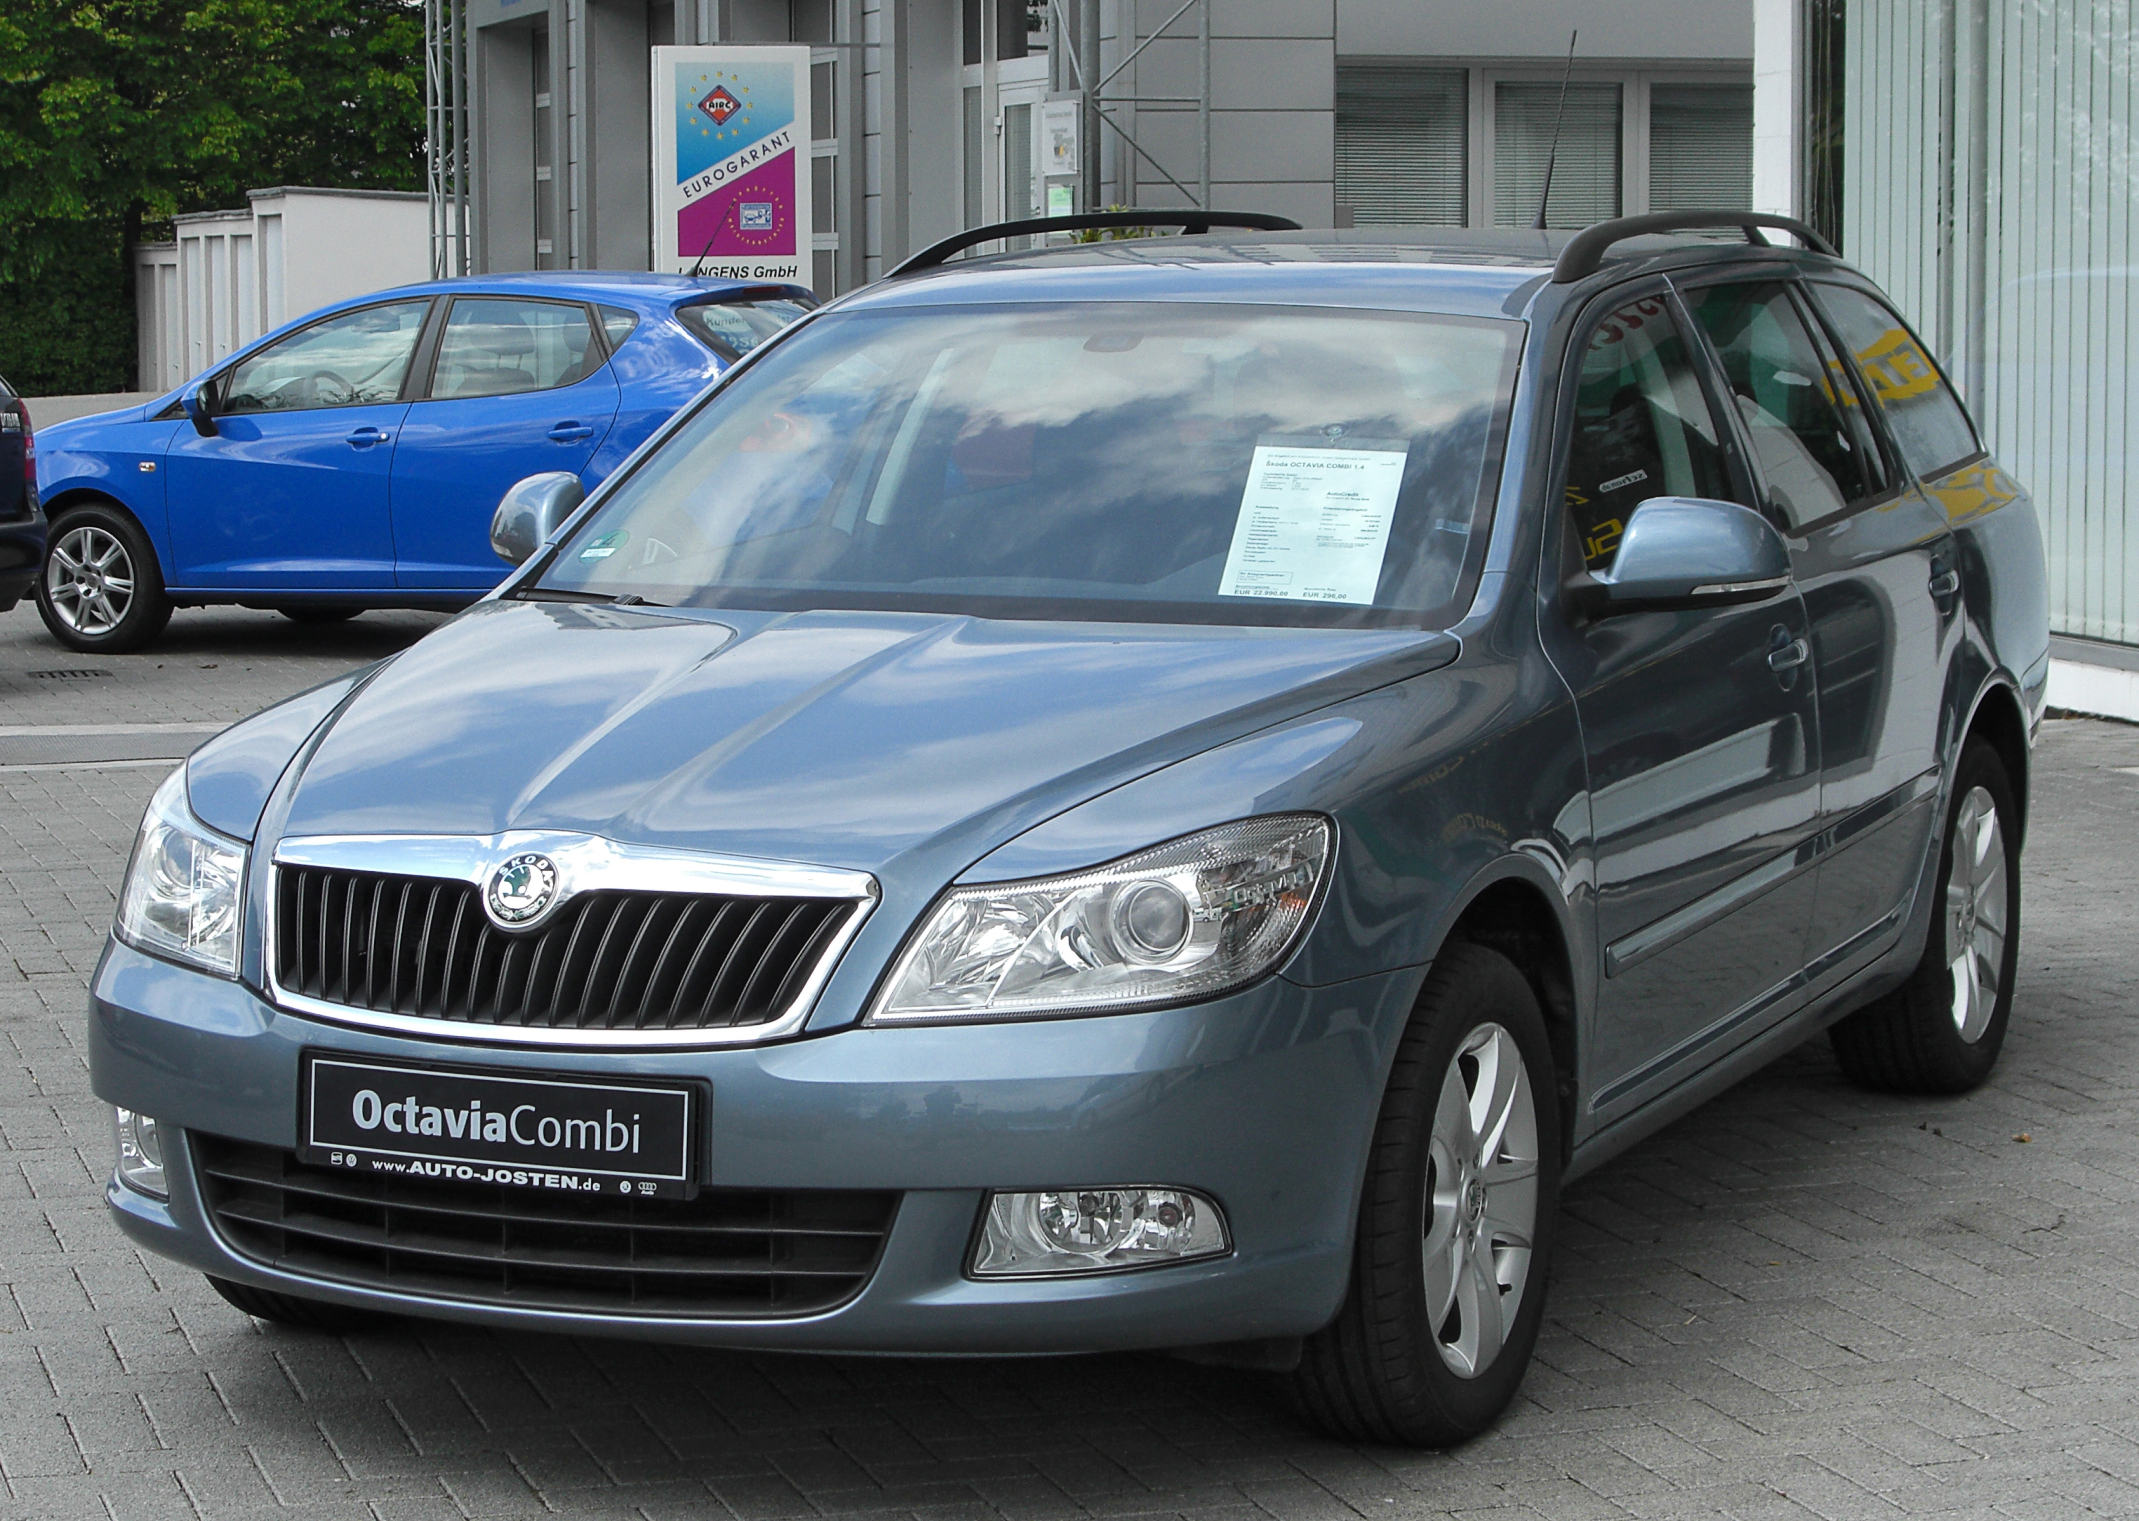 file skoda octavia ii combi 1 4 facelift front. Black Bedroom Furniture Sets. Home Design Ideas